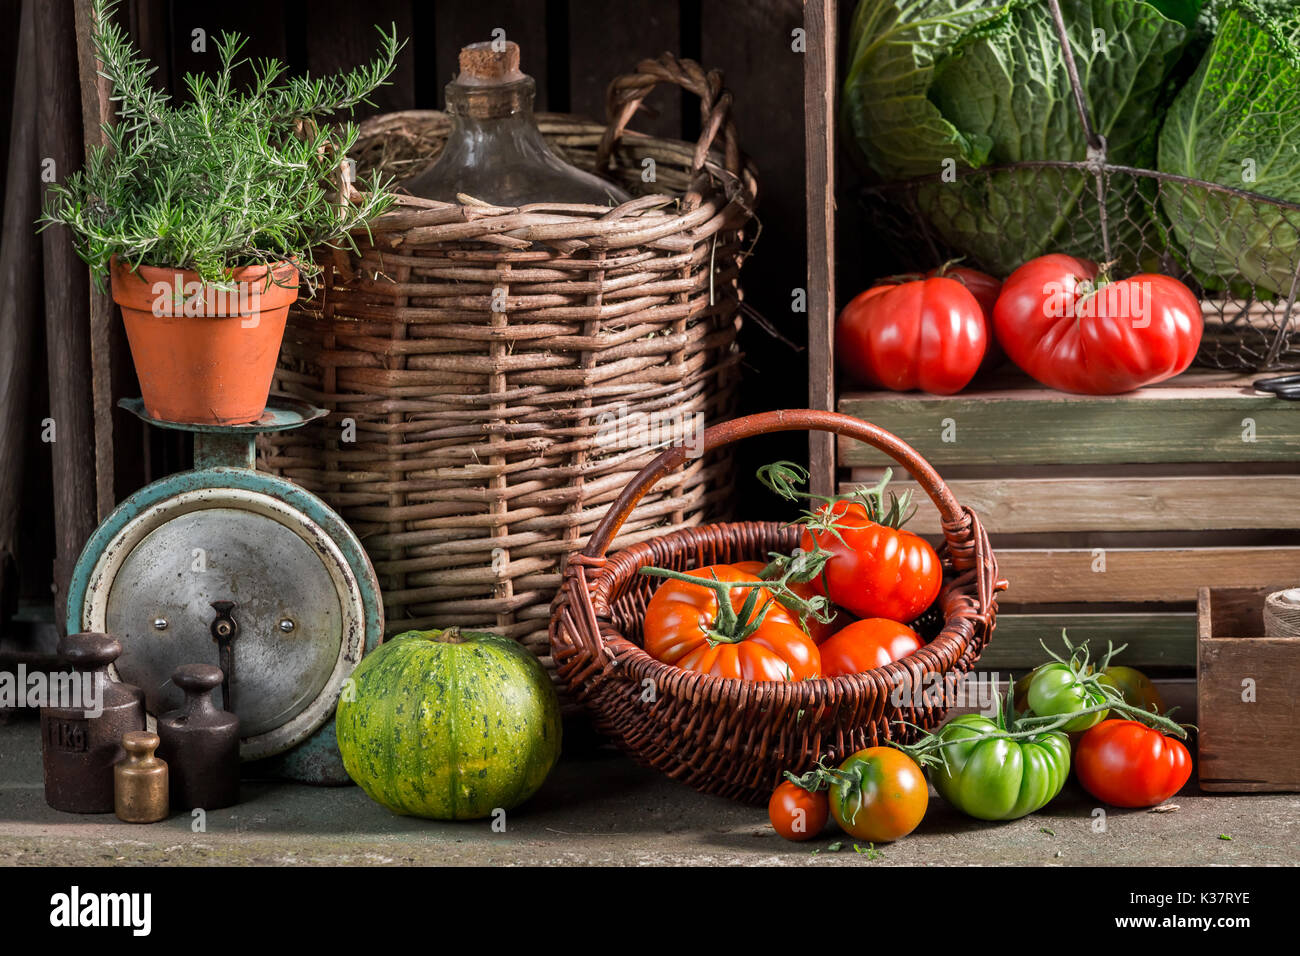 Vintage cellar with harvested vegetables and fruits - Stock Image